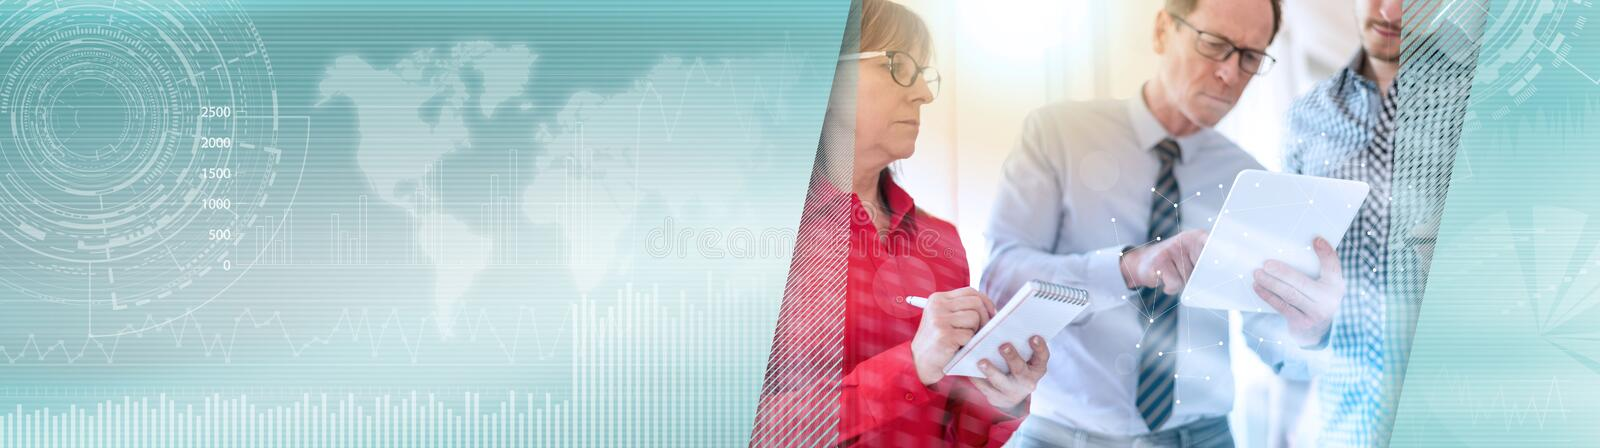 Business people in meeting working on tablet, overlaid with network, light effect. panoramic banner. Business people in meeting working on tablet in office stock photography